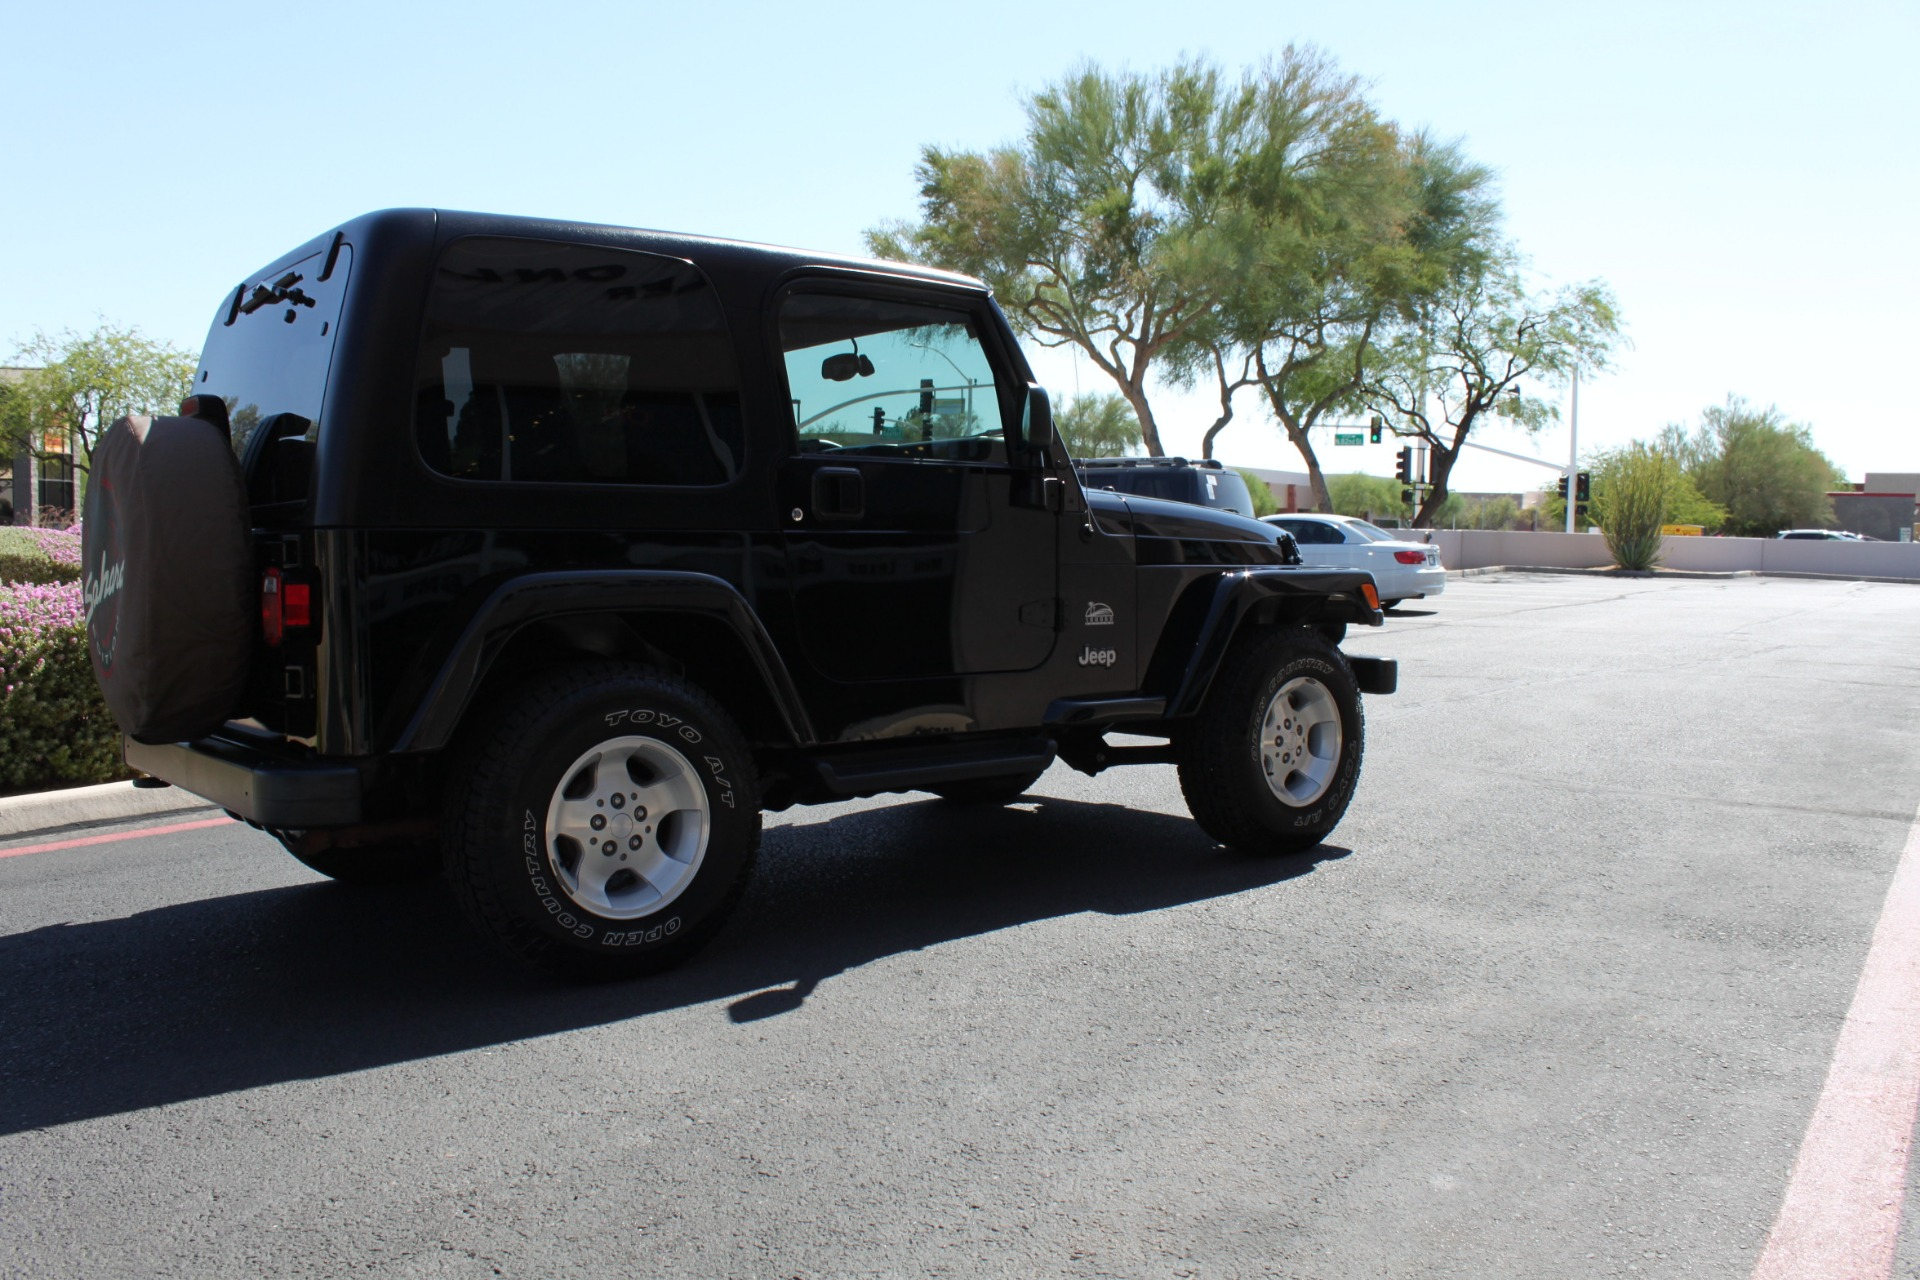 Used-2003-Jeep-Wrangler-Sahara-Chevelle